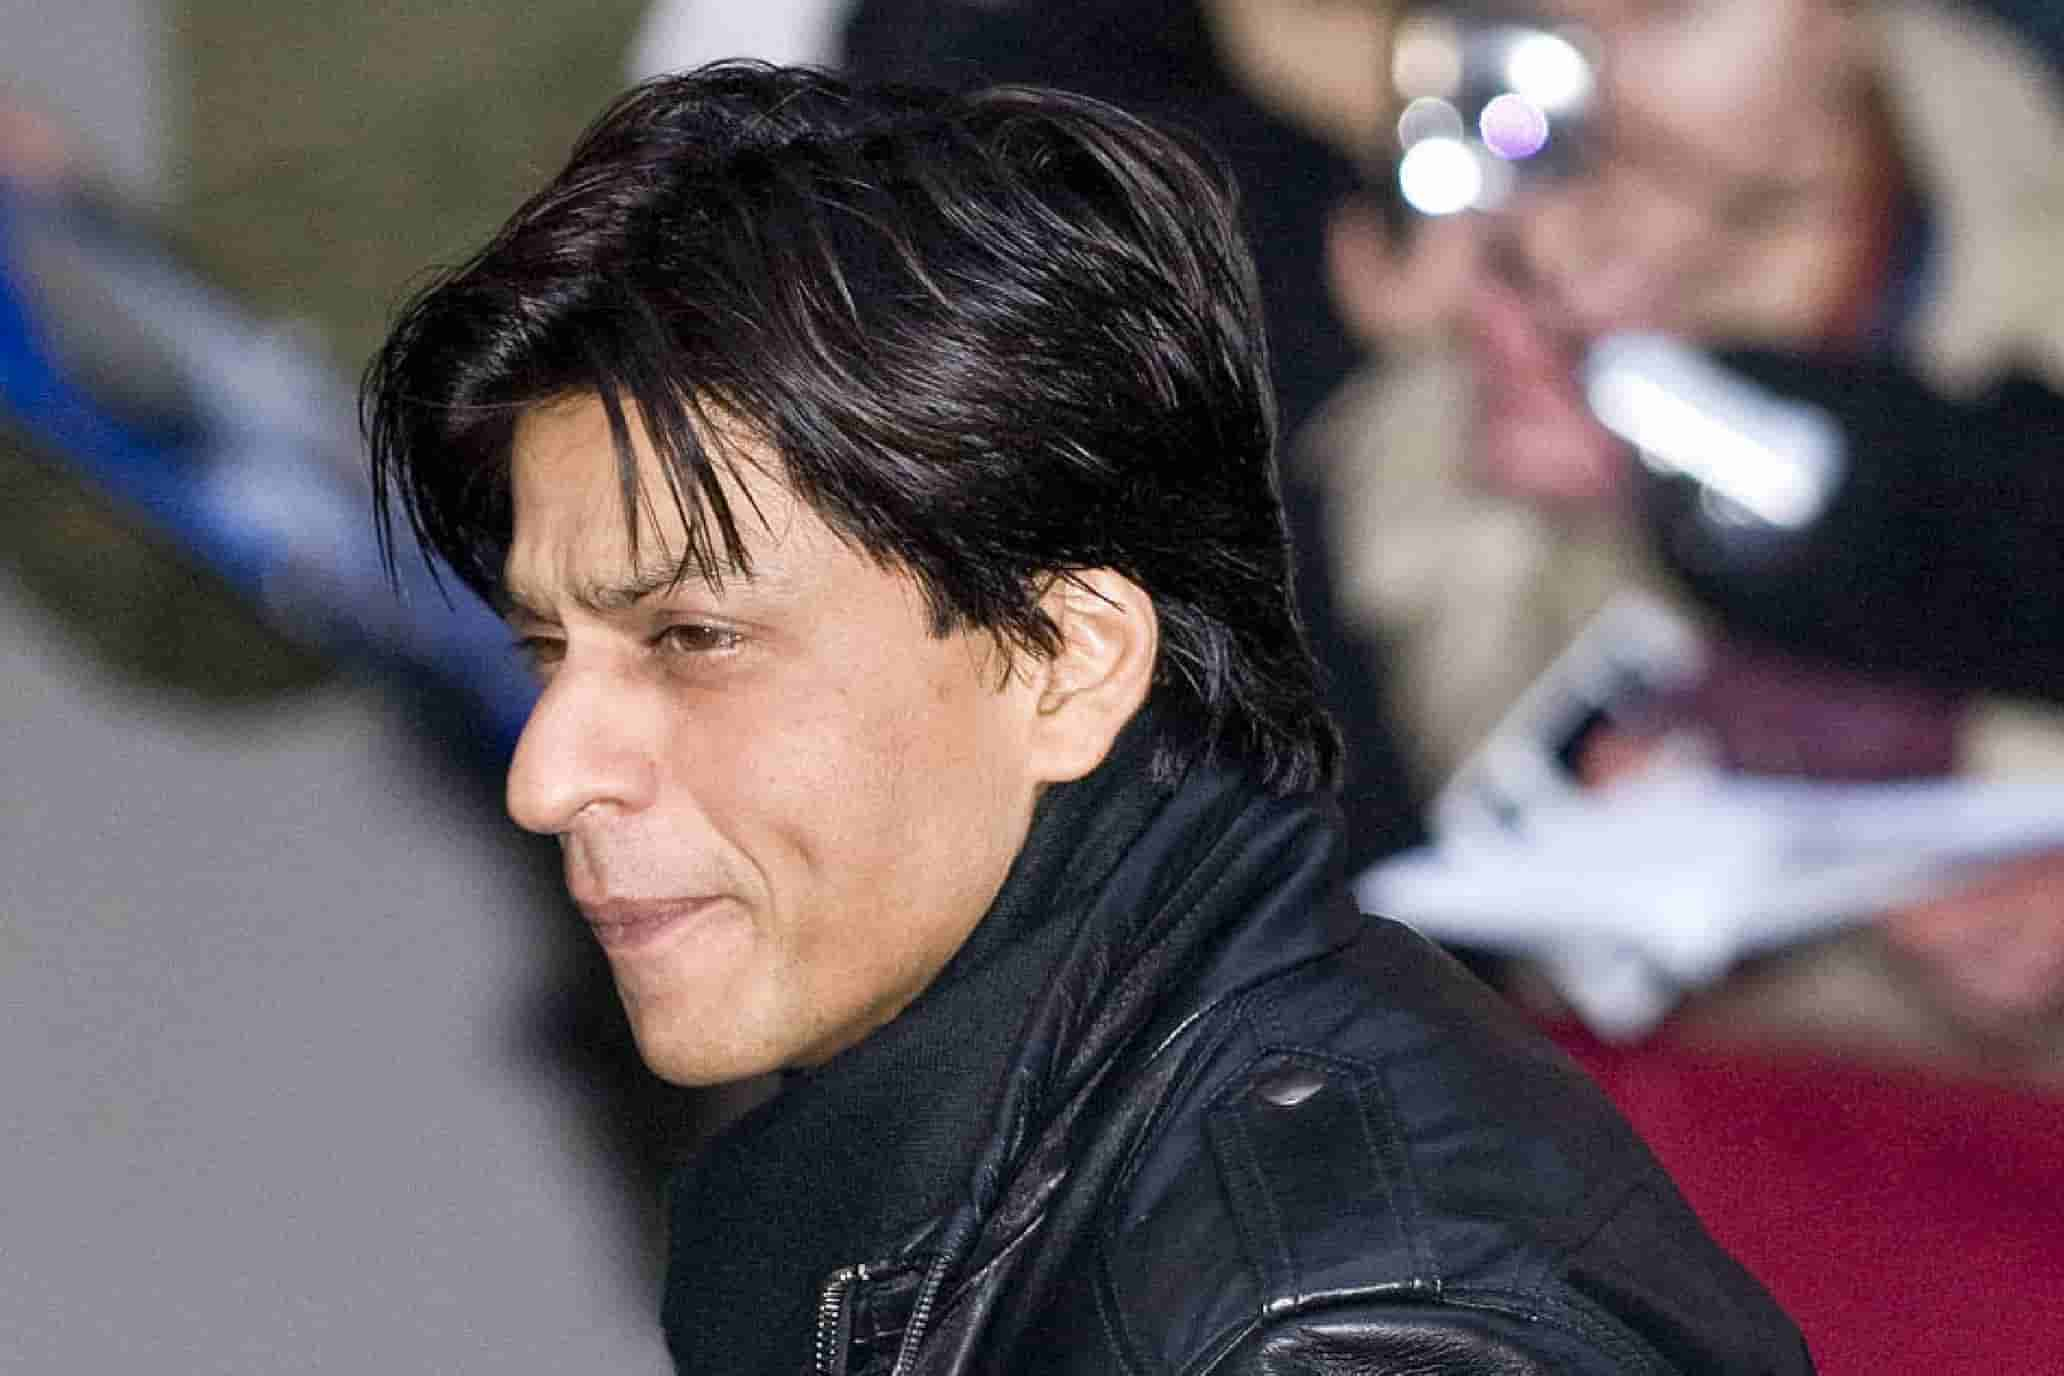 Shahrukh Khan Photo(images), Wife, Age, Son, Net Worth, Height, Daughter, Birth Date, Family, Biography, Children, Hairstyle, Education, Awards, Details, Instagram, Wiki. Twitter, Facebook, Im ( (40)